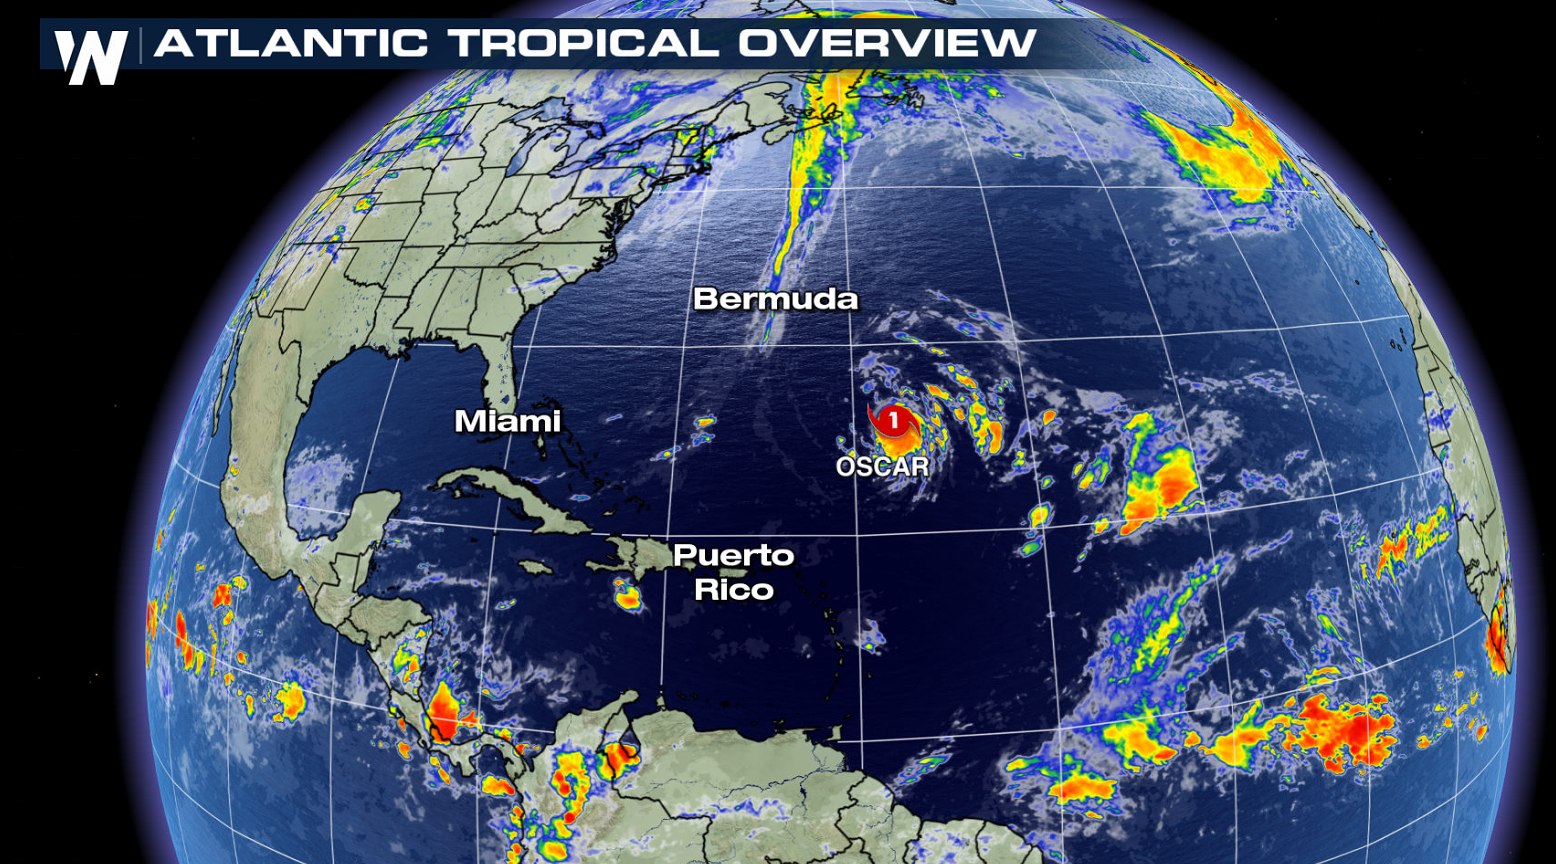 Oscar Continues to Strengthen in the Atlantic, but No Threat to Land